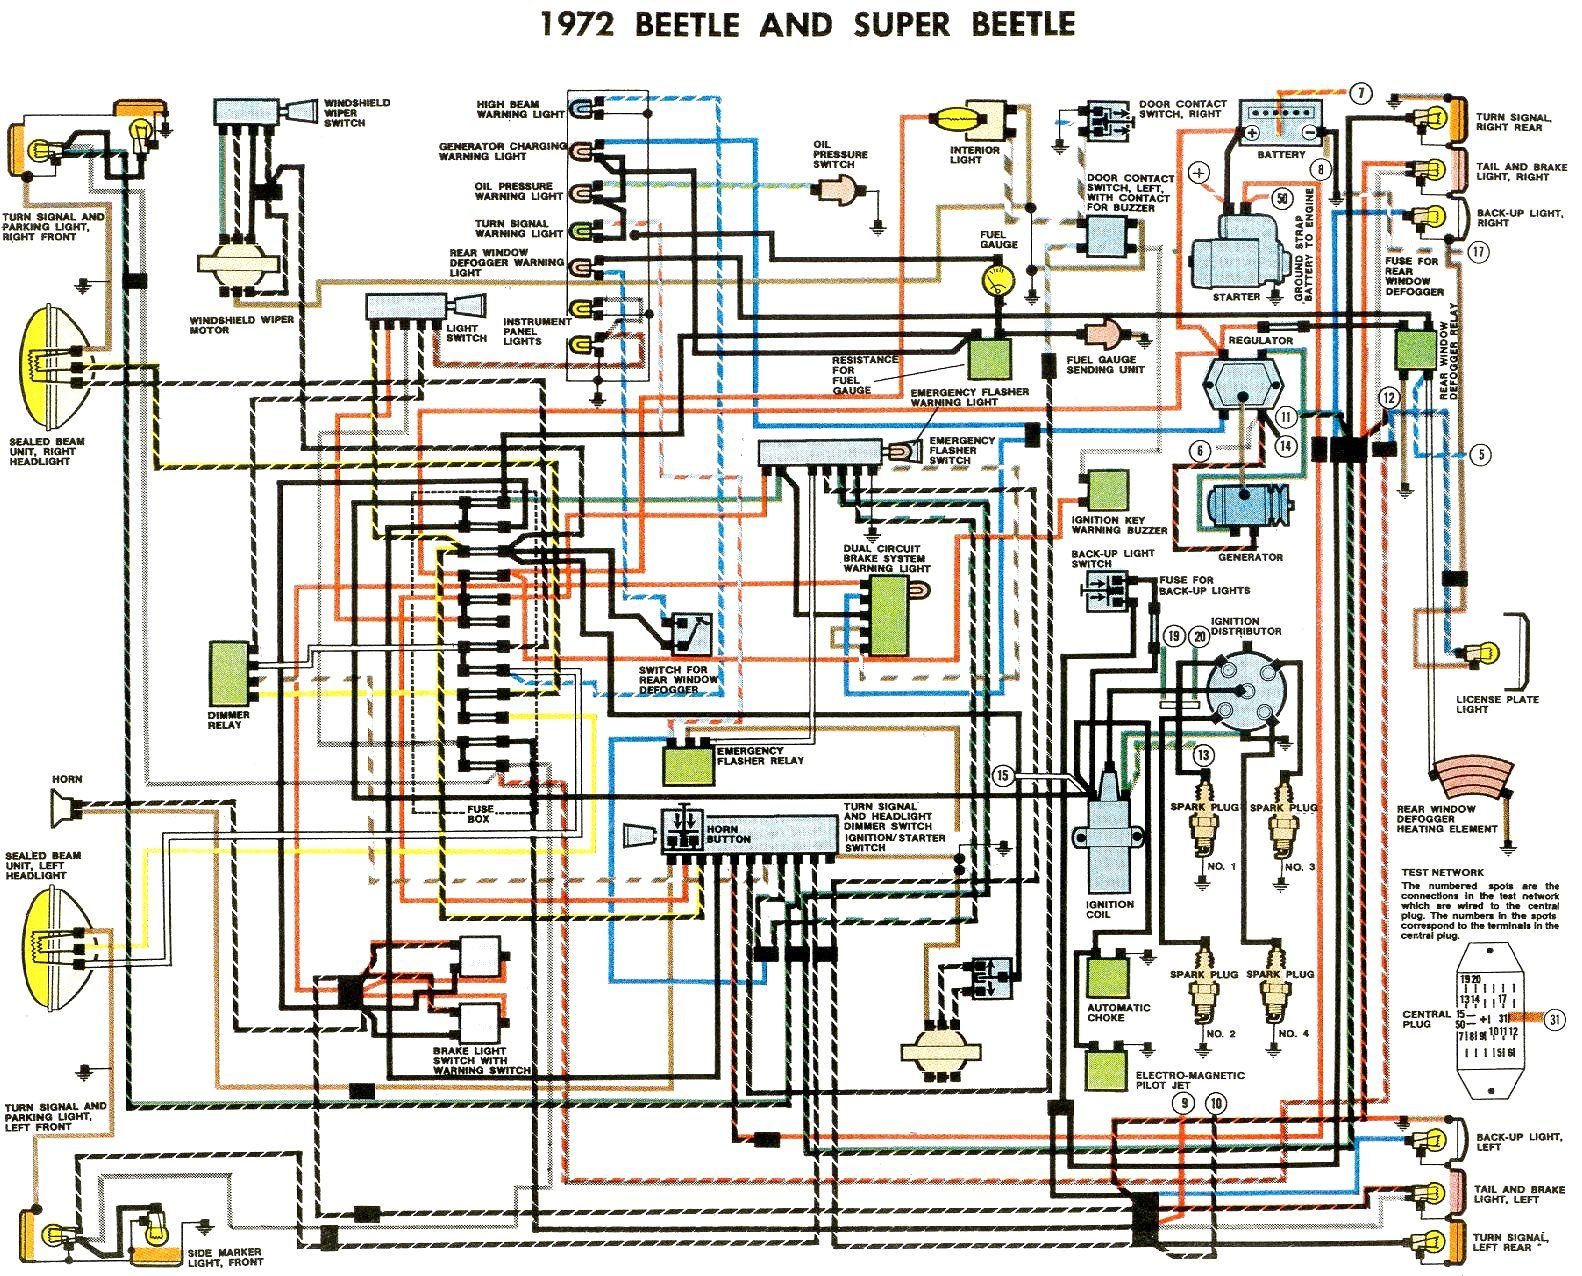 It Is A Context For Learning Fundamentals Of Computer Programming And Electrical Wiring In General Refers To Ins Vw Super Beetle Diagram Design Volkswagen Car